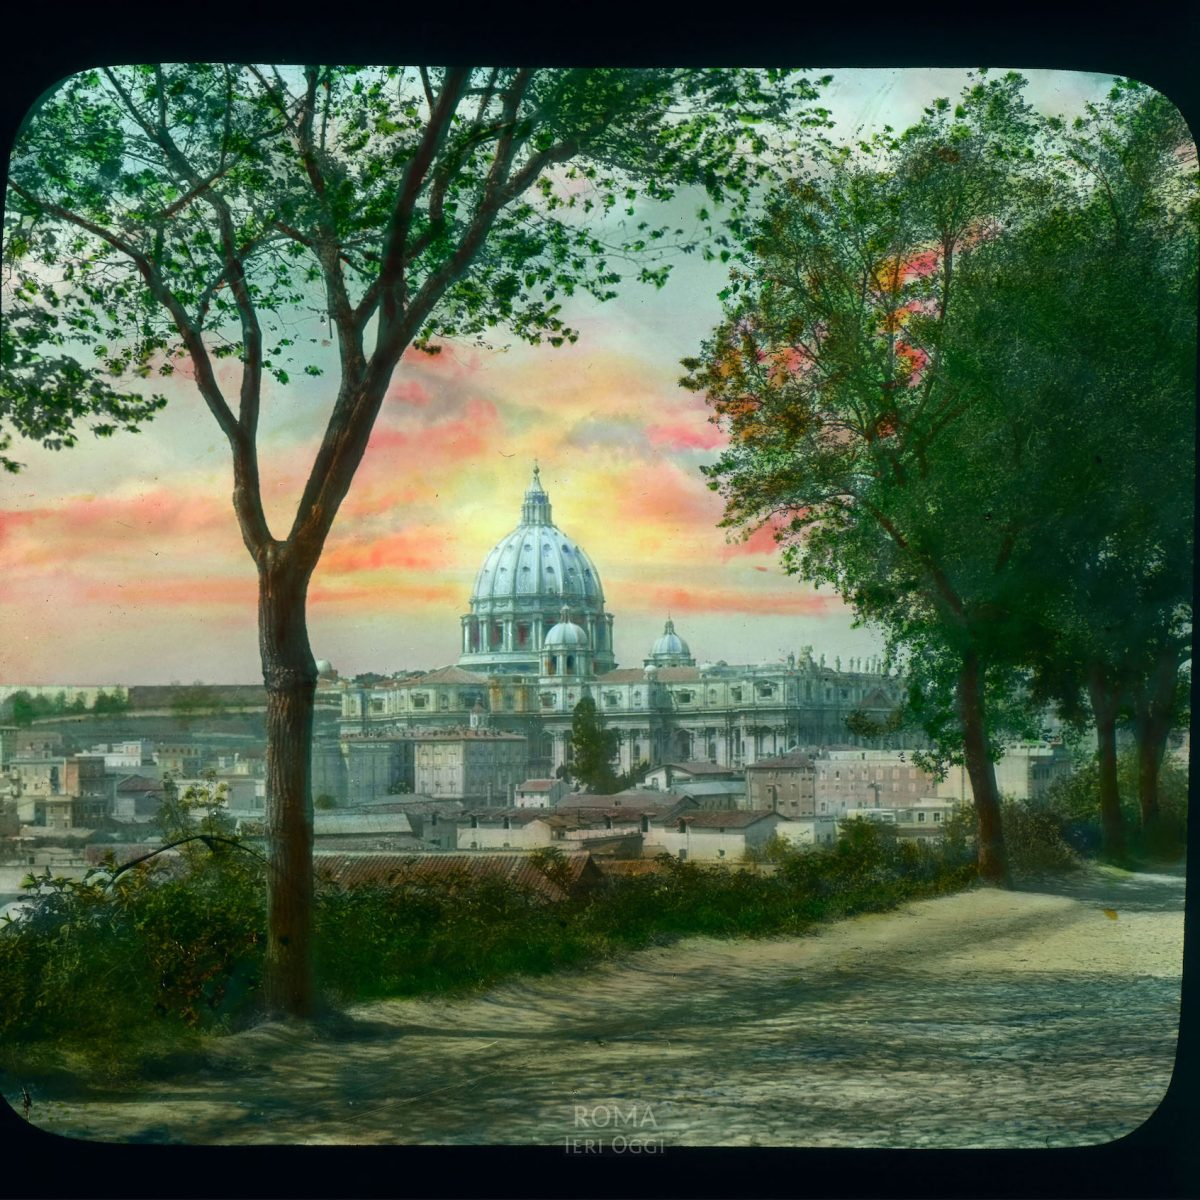 Vatican City. St. Peter's Basilica: distant view over city rooftops View in tinted lantern slide, ca. 1919-1938. The basilica dates from ca. 1506-1626.